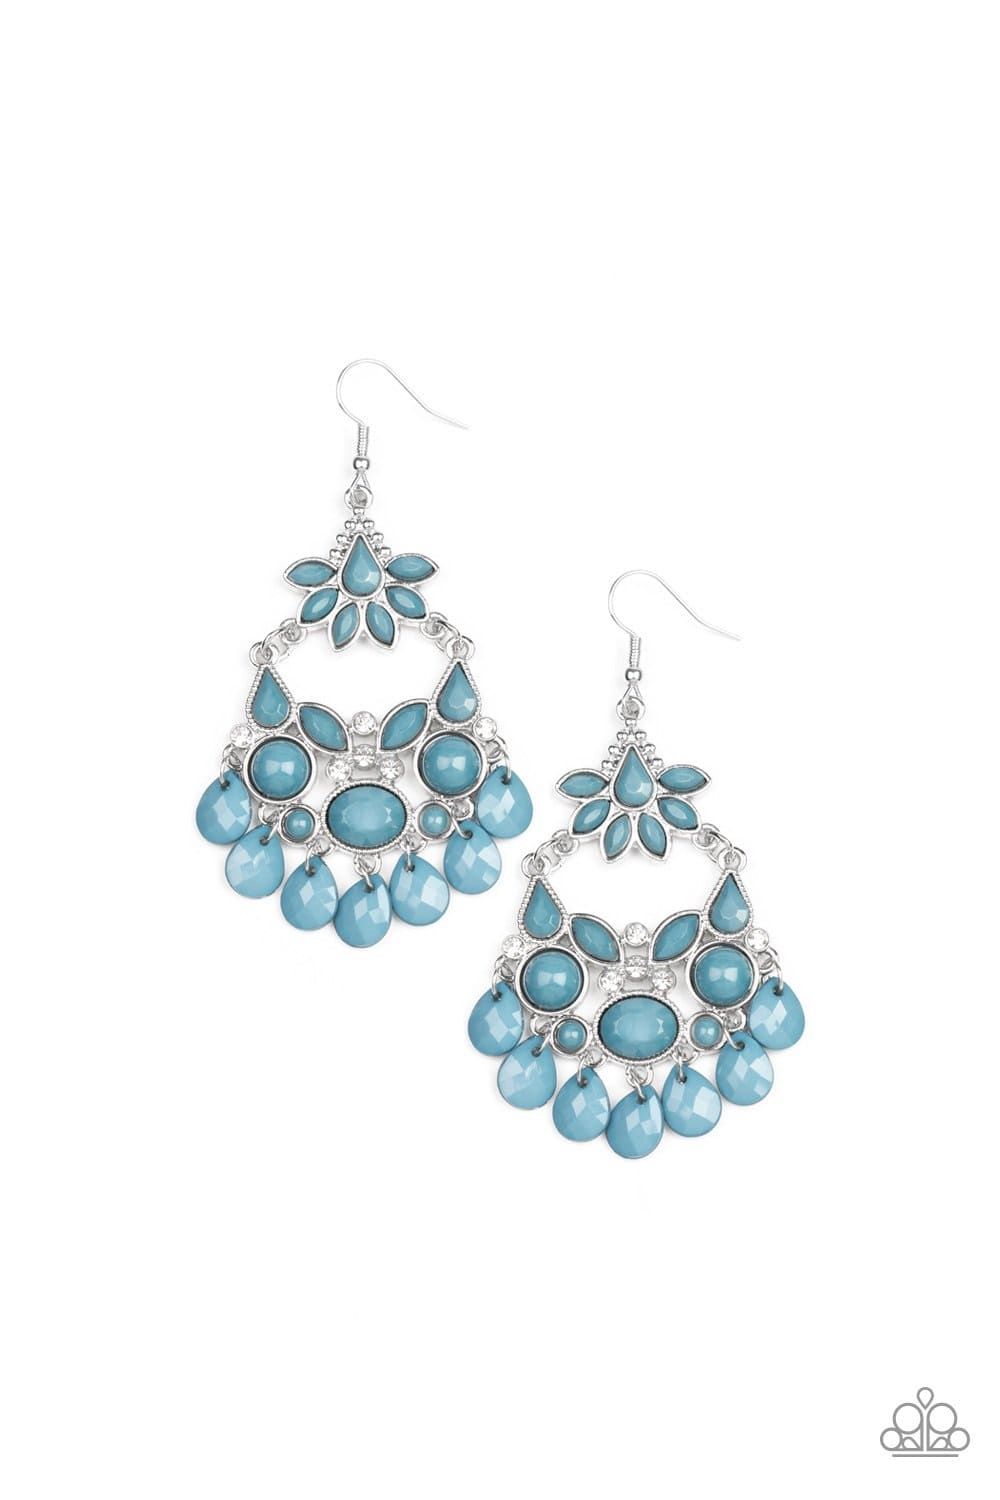 Garden Dream - Blue: Paparazzi Accessories - Jewels N' Thingz Boutique